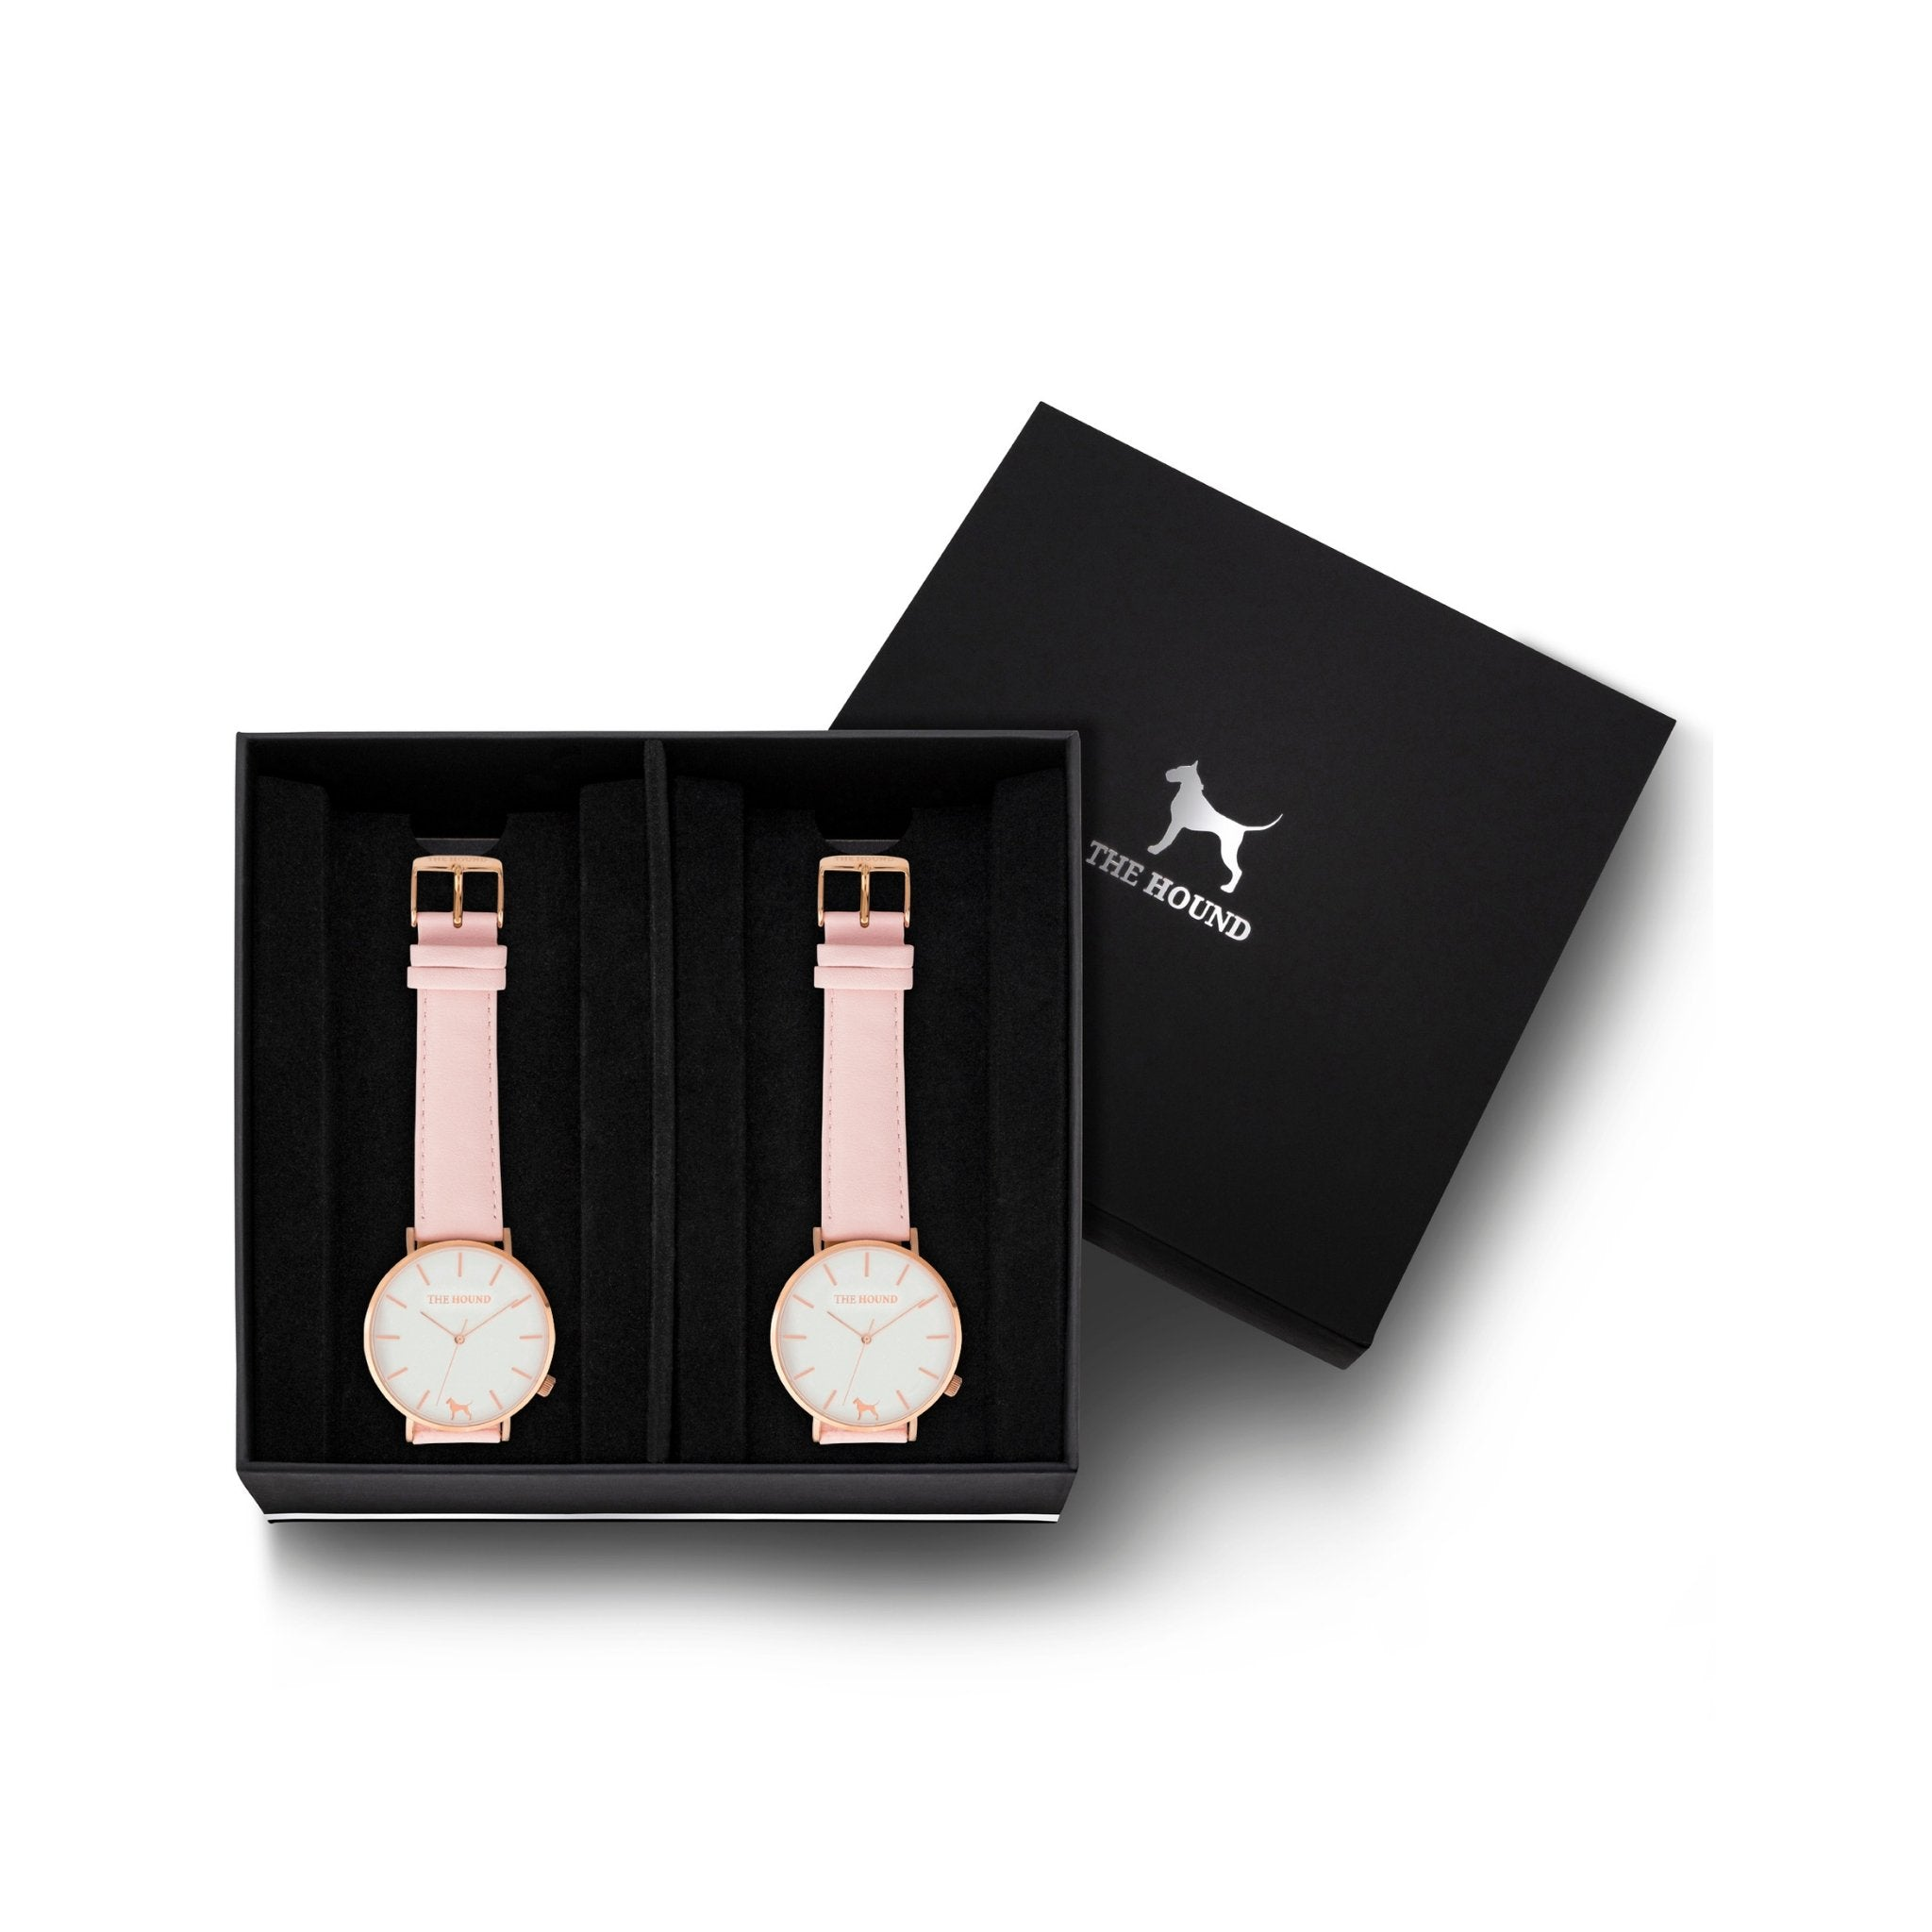 Custom gift set - Rose gold and white watch with stitched blush pink genuine leather band and a rose gold and white watch with stitched blush pink genuine leather band